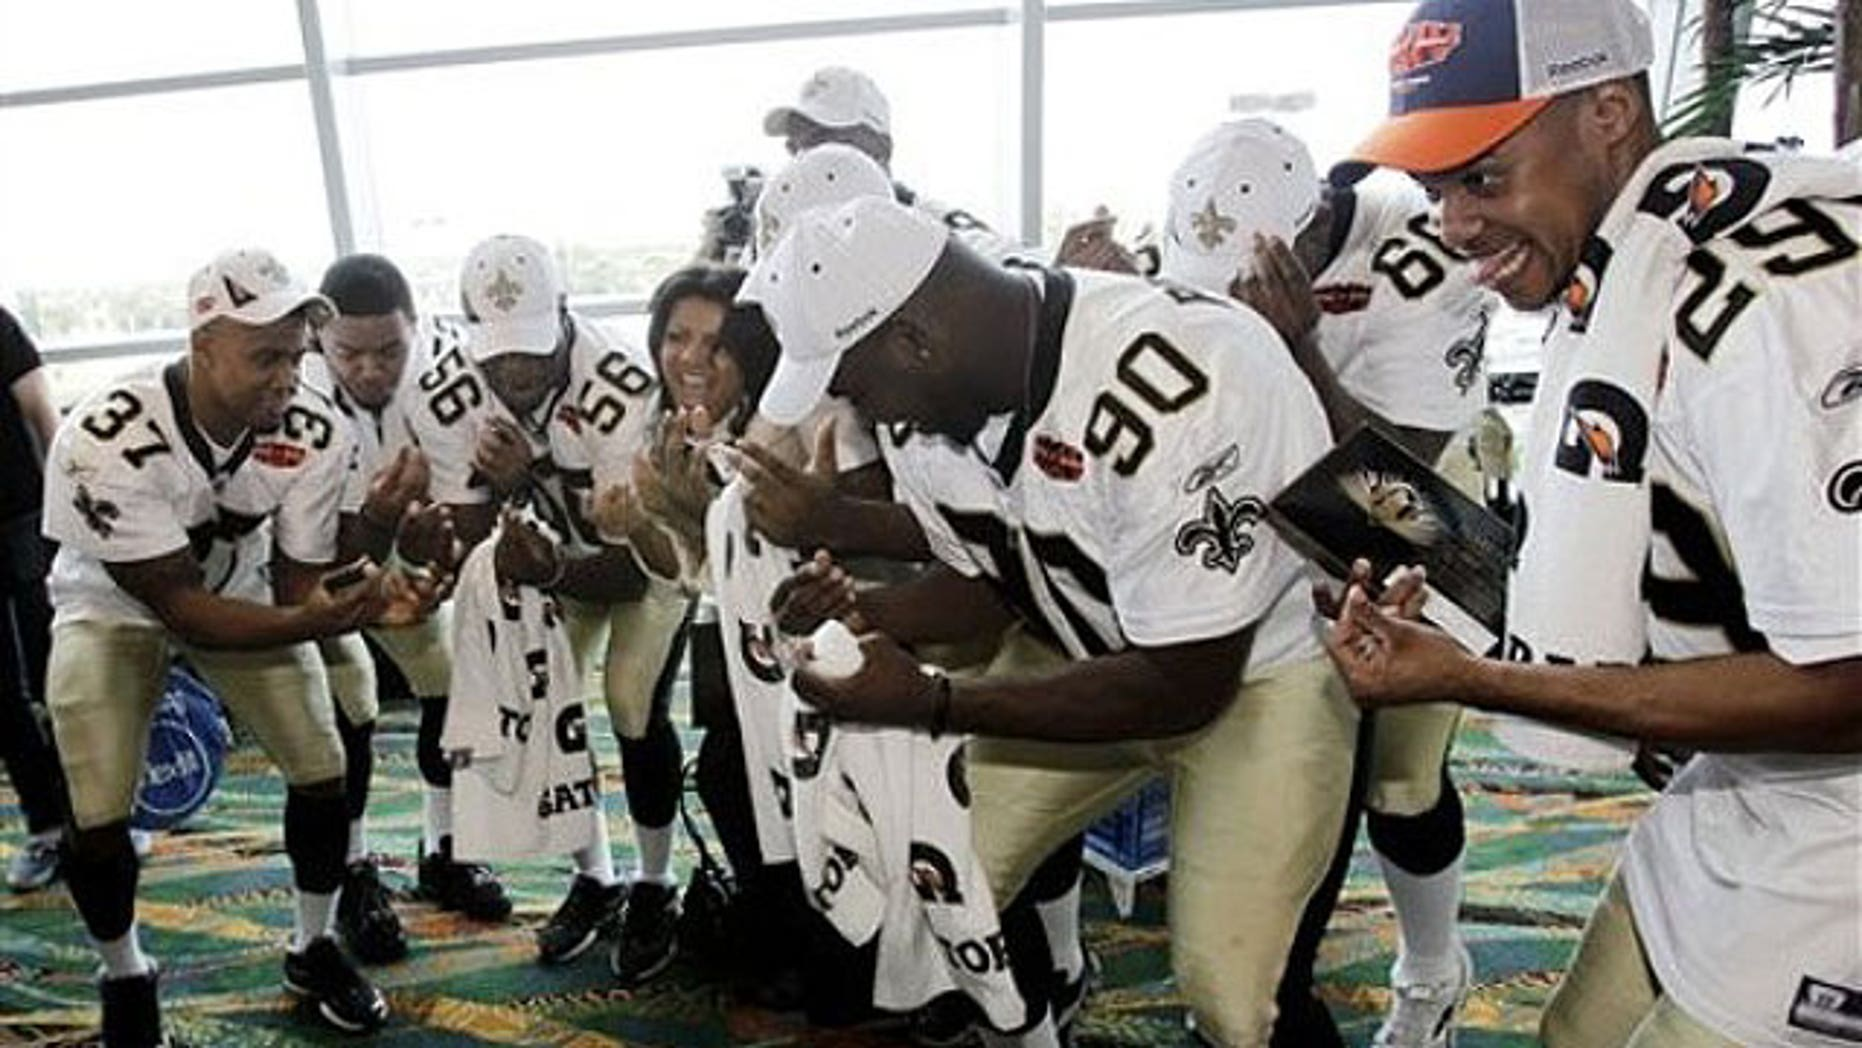 Some of the New Orleans Saints get down at a Super Bowl press conference. (AP)